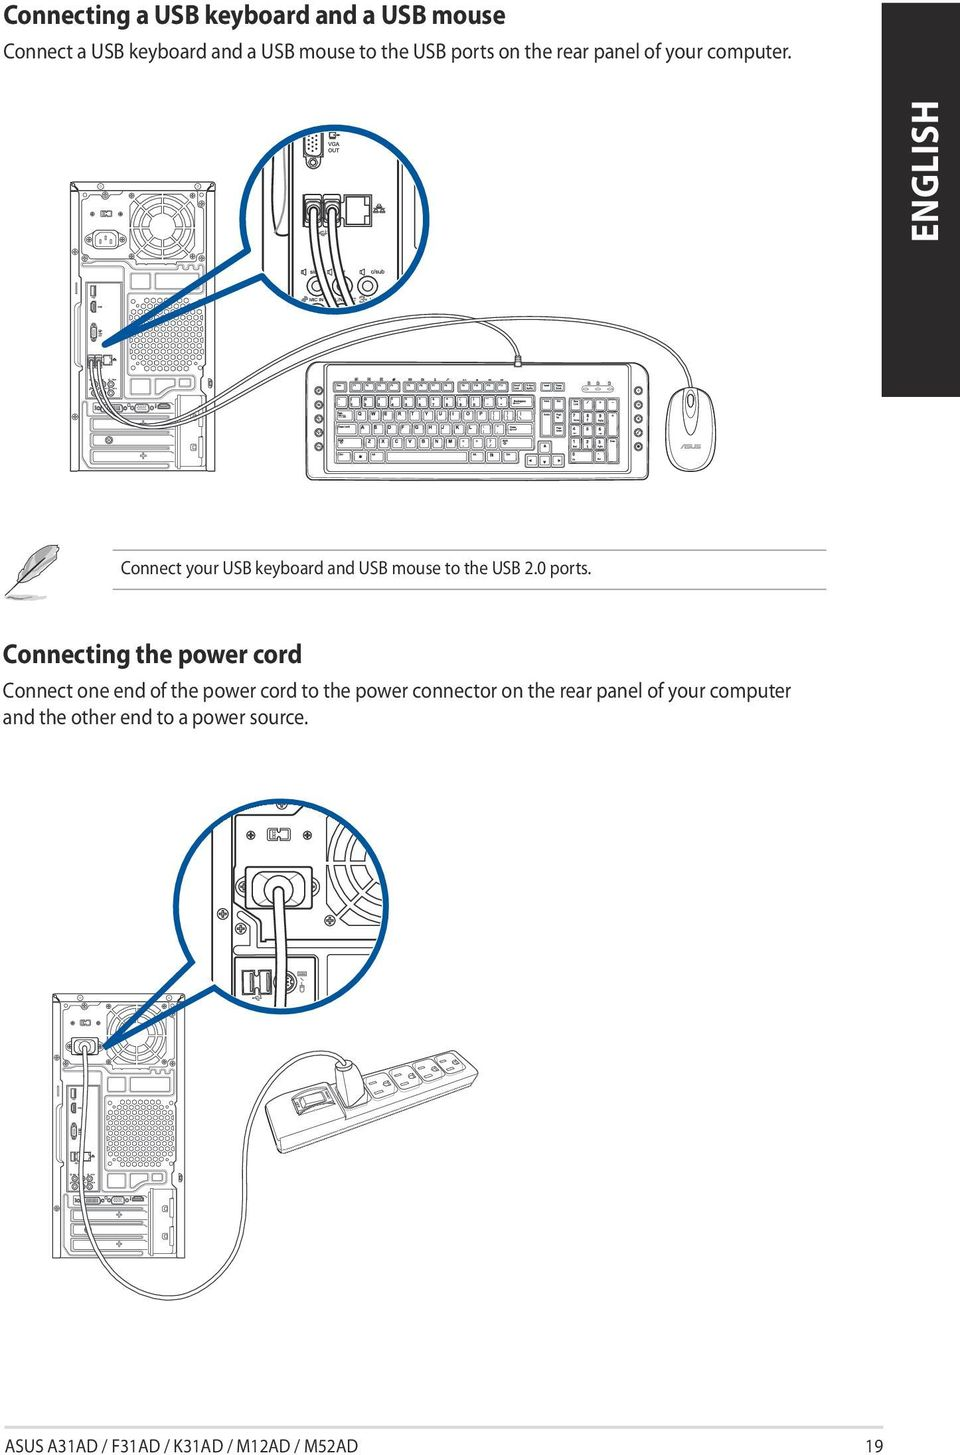 Asus Desktop Pc A31ad F31ad K31ad M12ad And M52ad User Guide Pdf Power Cord Wiring Diagram Connecting The Connect One End Of To Connector On